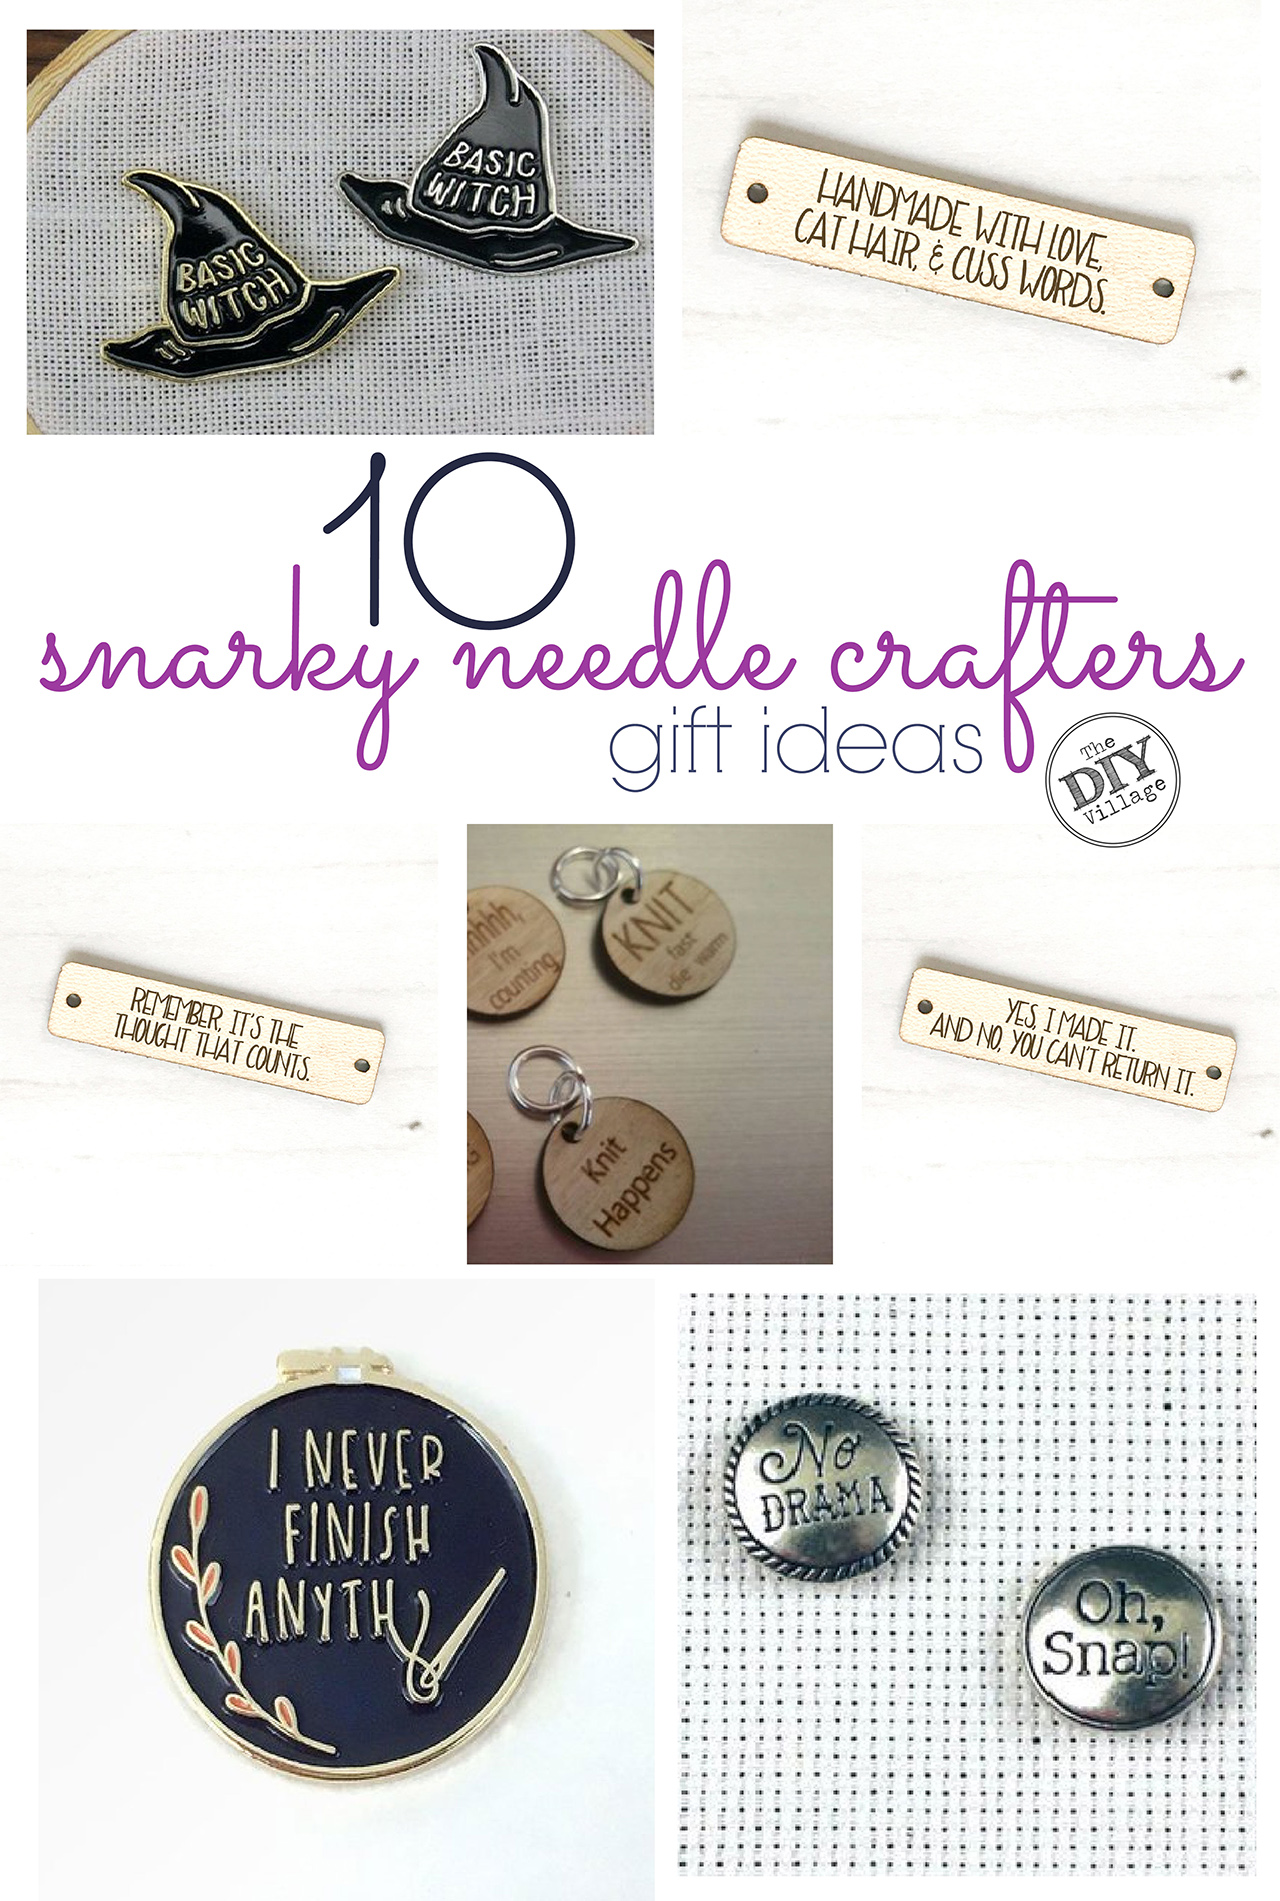 10 hilarious gift ideas for the snarky needle crafters in your life.  I love all of these!  So affordable!  #snarkycrafter #needleminder #crochettag #knittag #giftideas #craftergiftideas #funnygifts